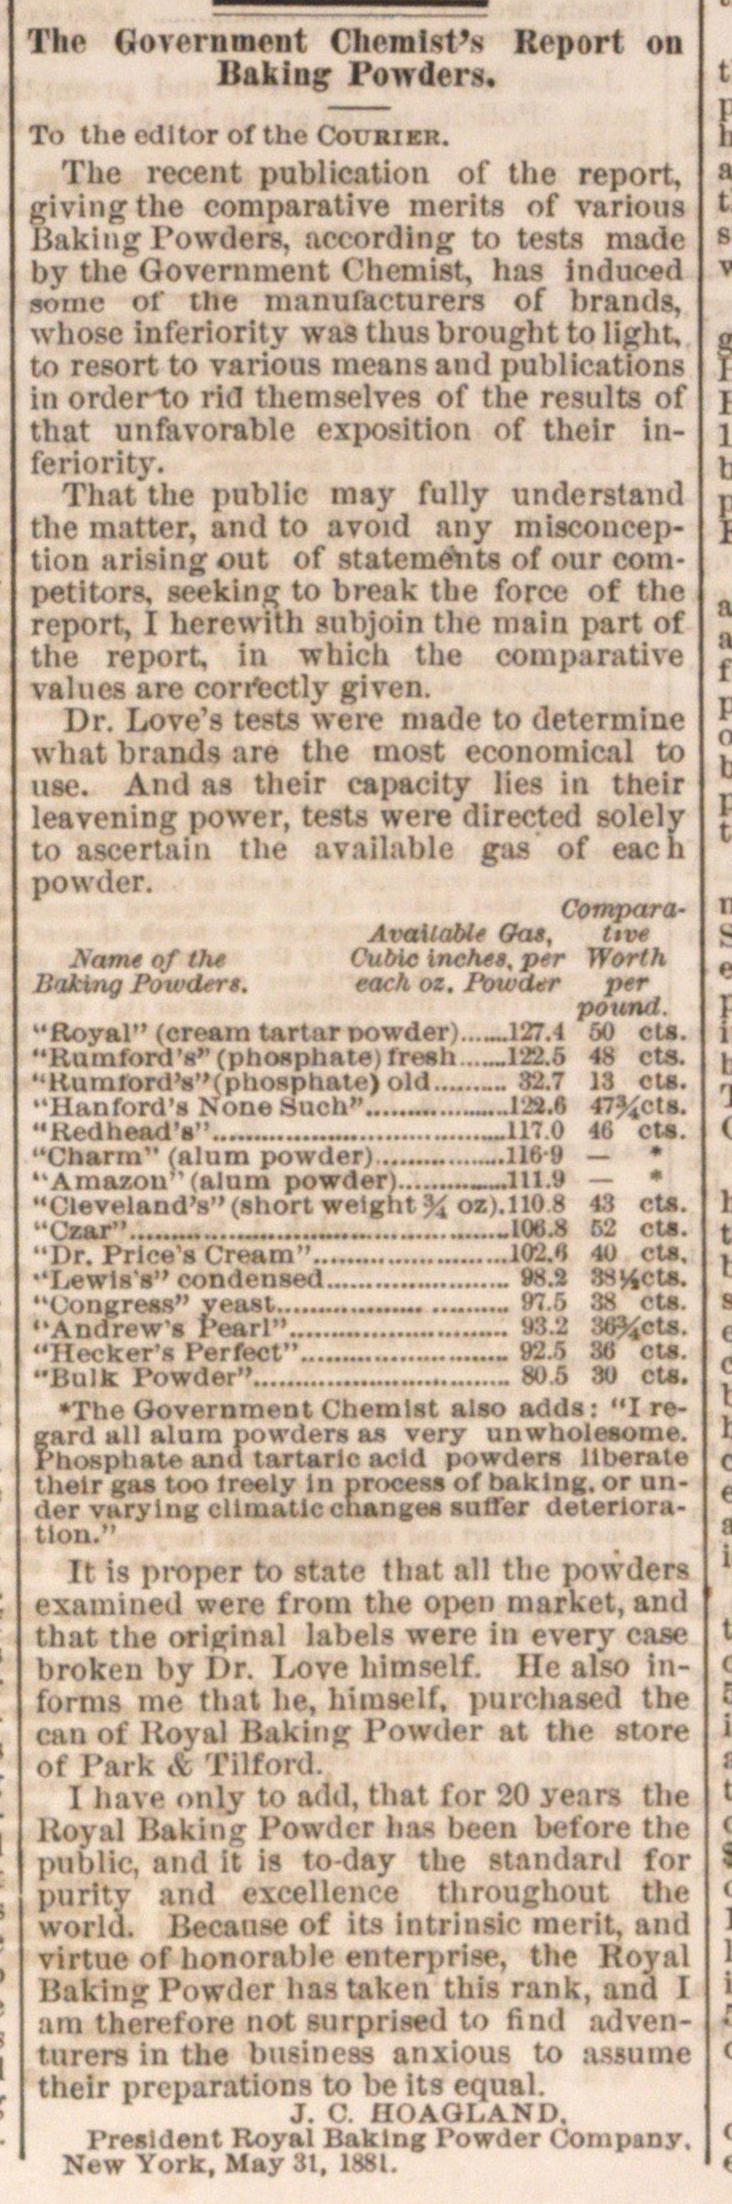 The Government Chemist's Report On Baking Powders image